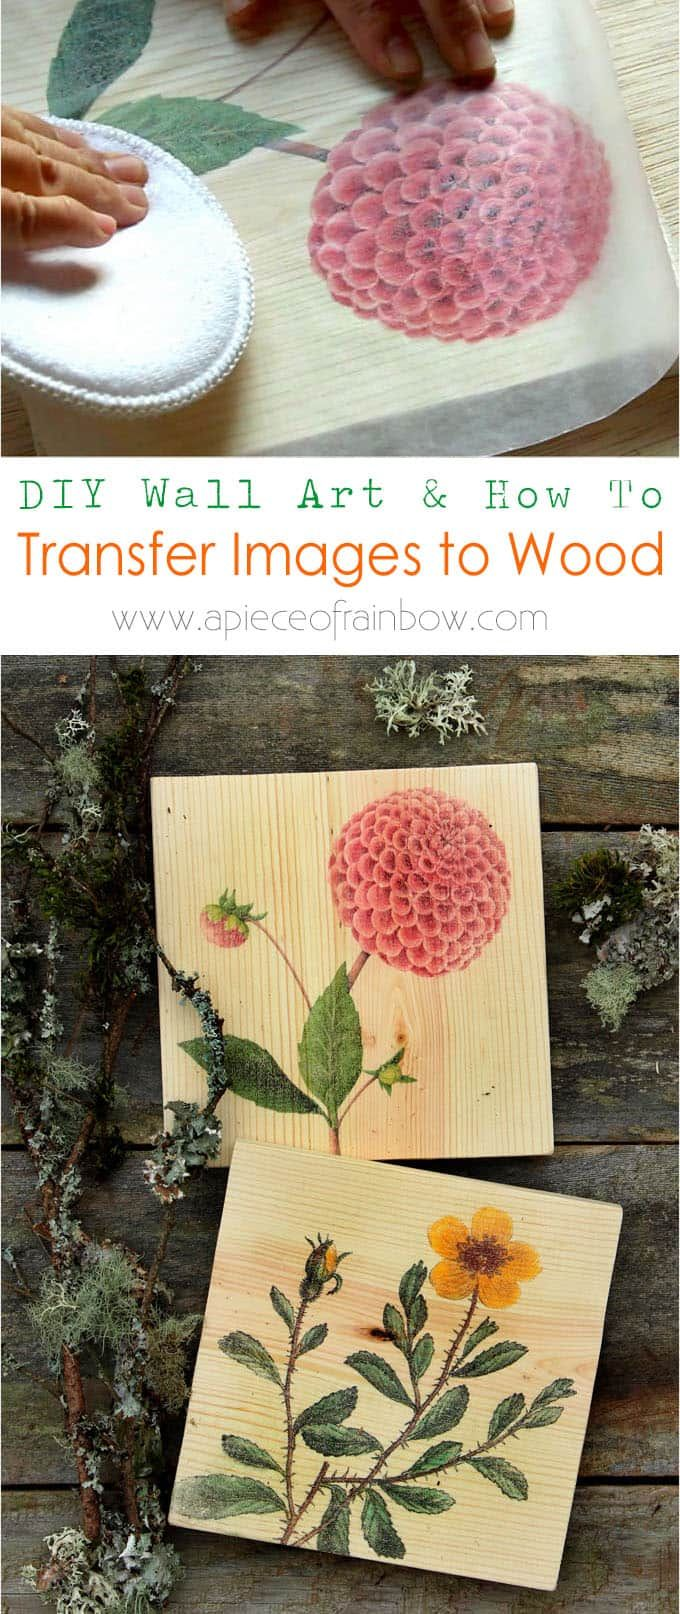 DIY Wall Art & How to Transfer Image to Wood | Pinterest | Wood wall ...